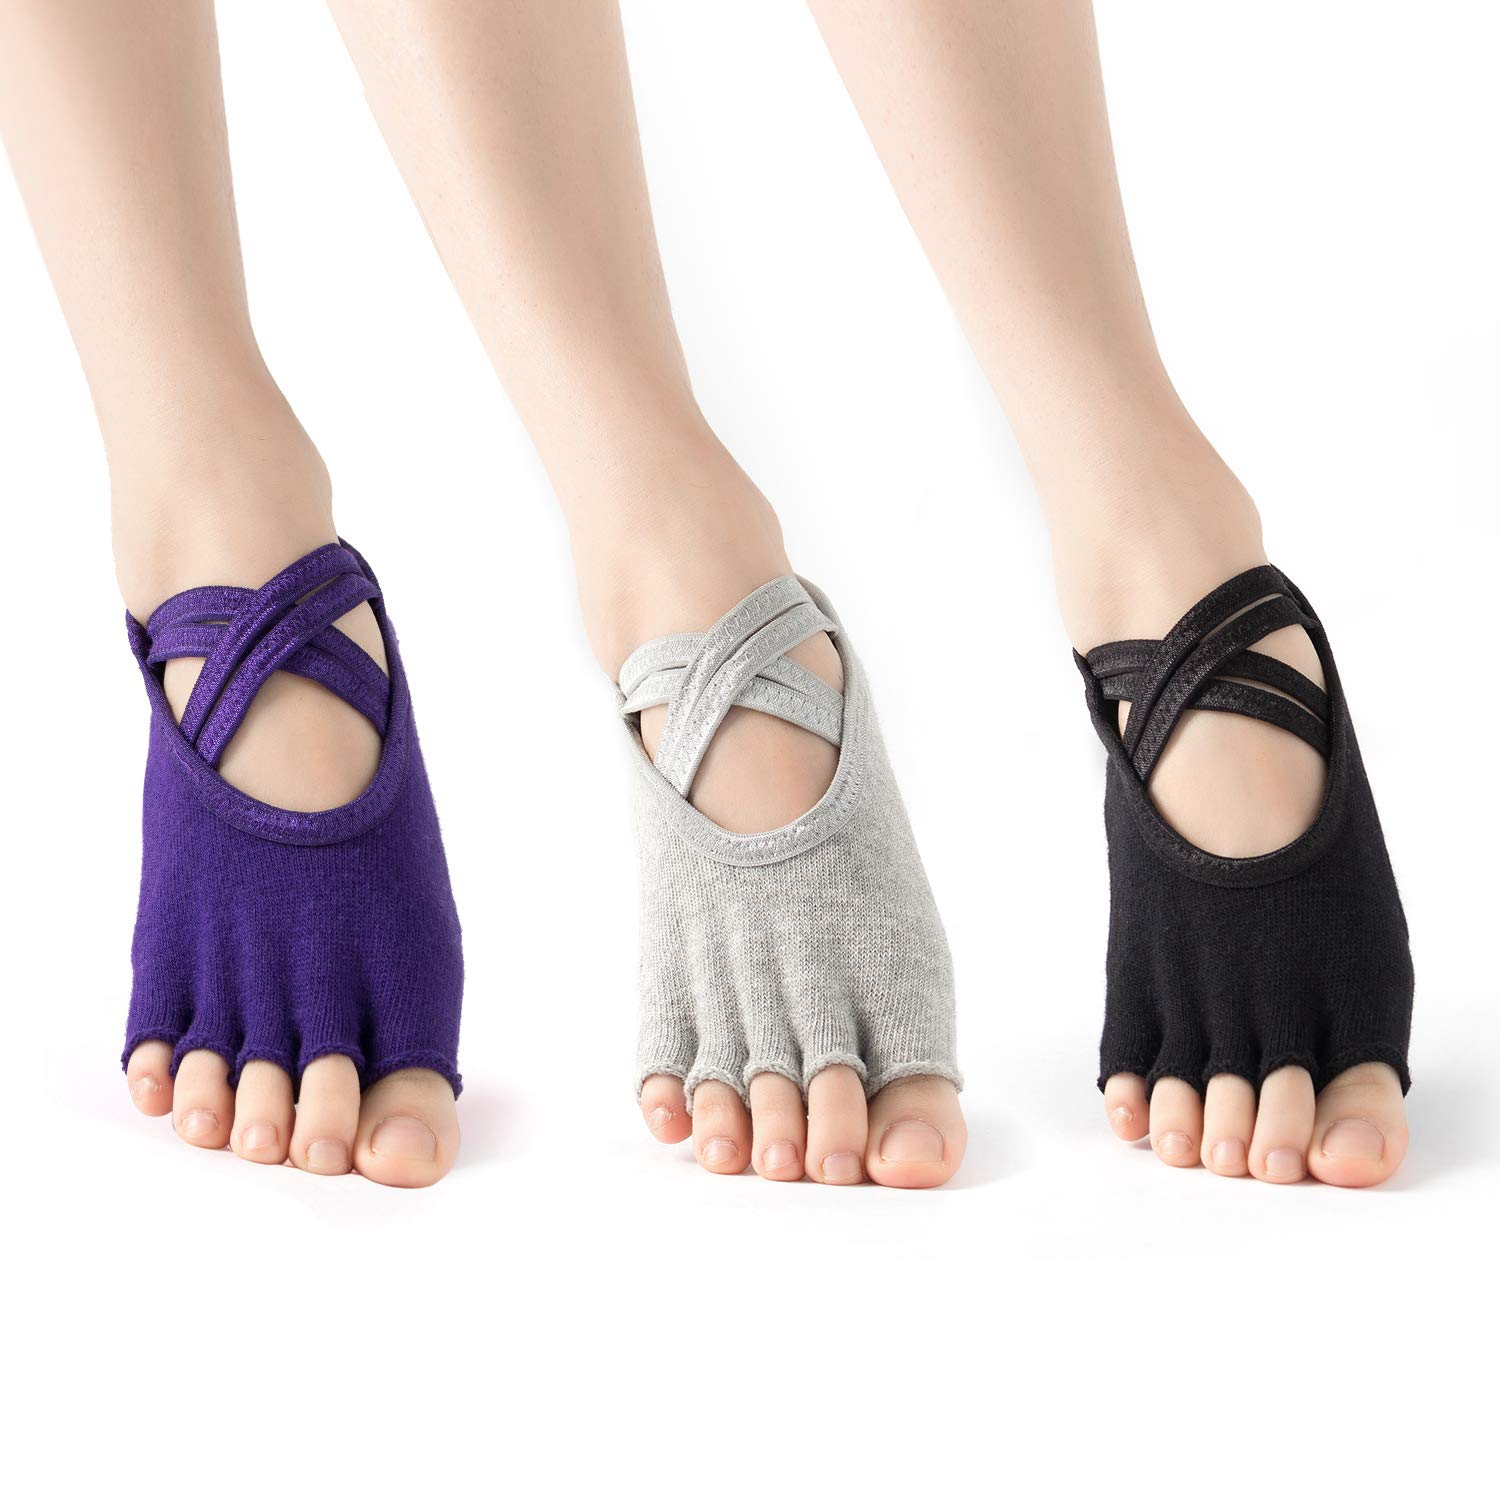 Black Grey Purple Cexxy dance socks for women non slip yoga socks with grips for Pilates, Ballet, Barre class, 3 pairs size 511